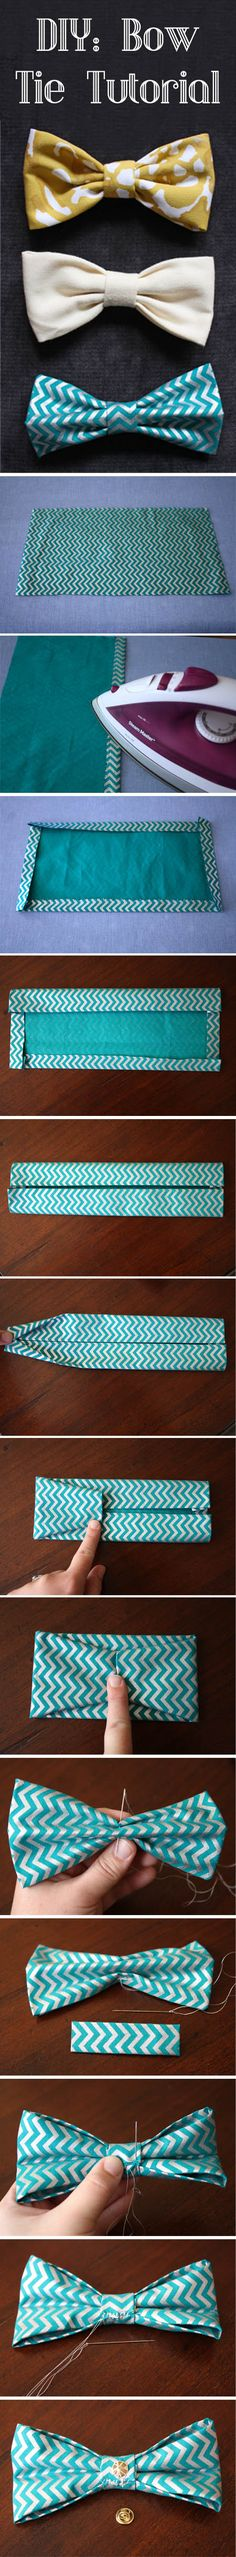 DIY bow tie tutorial.